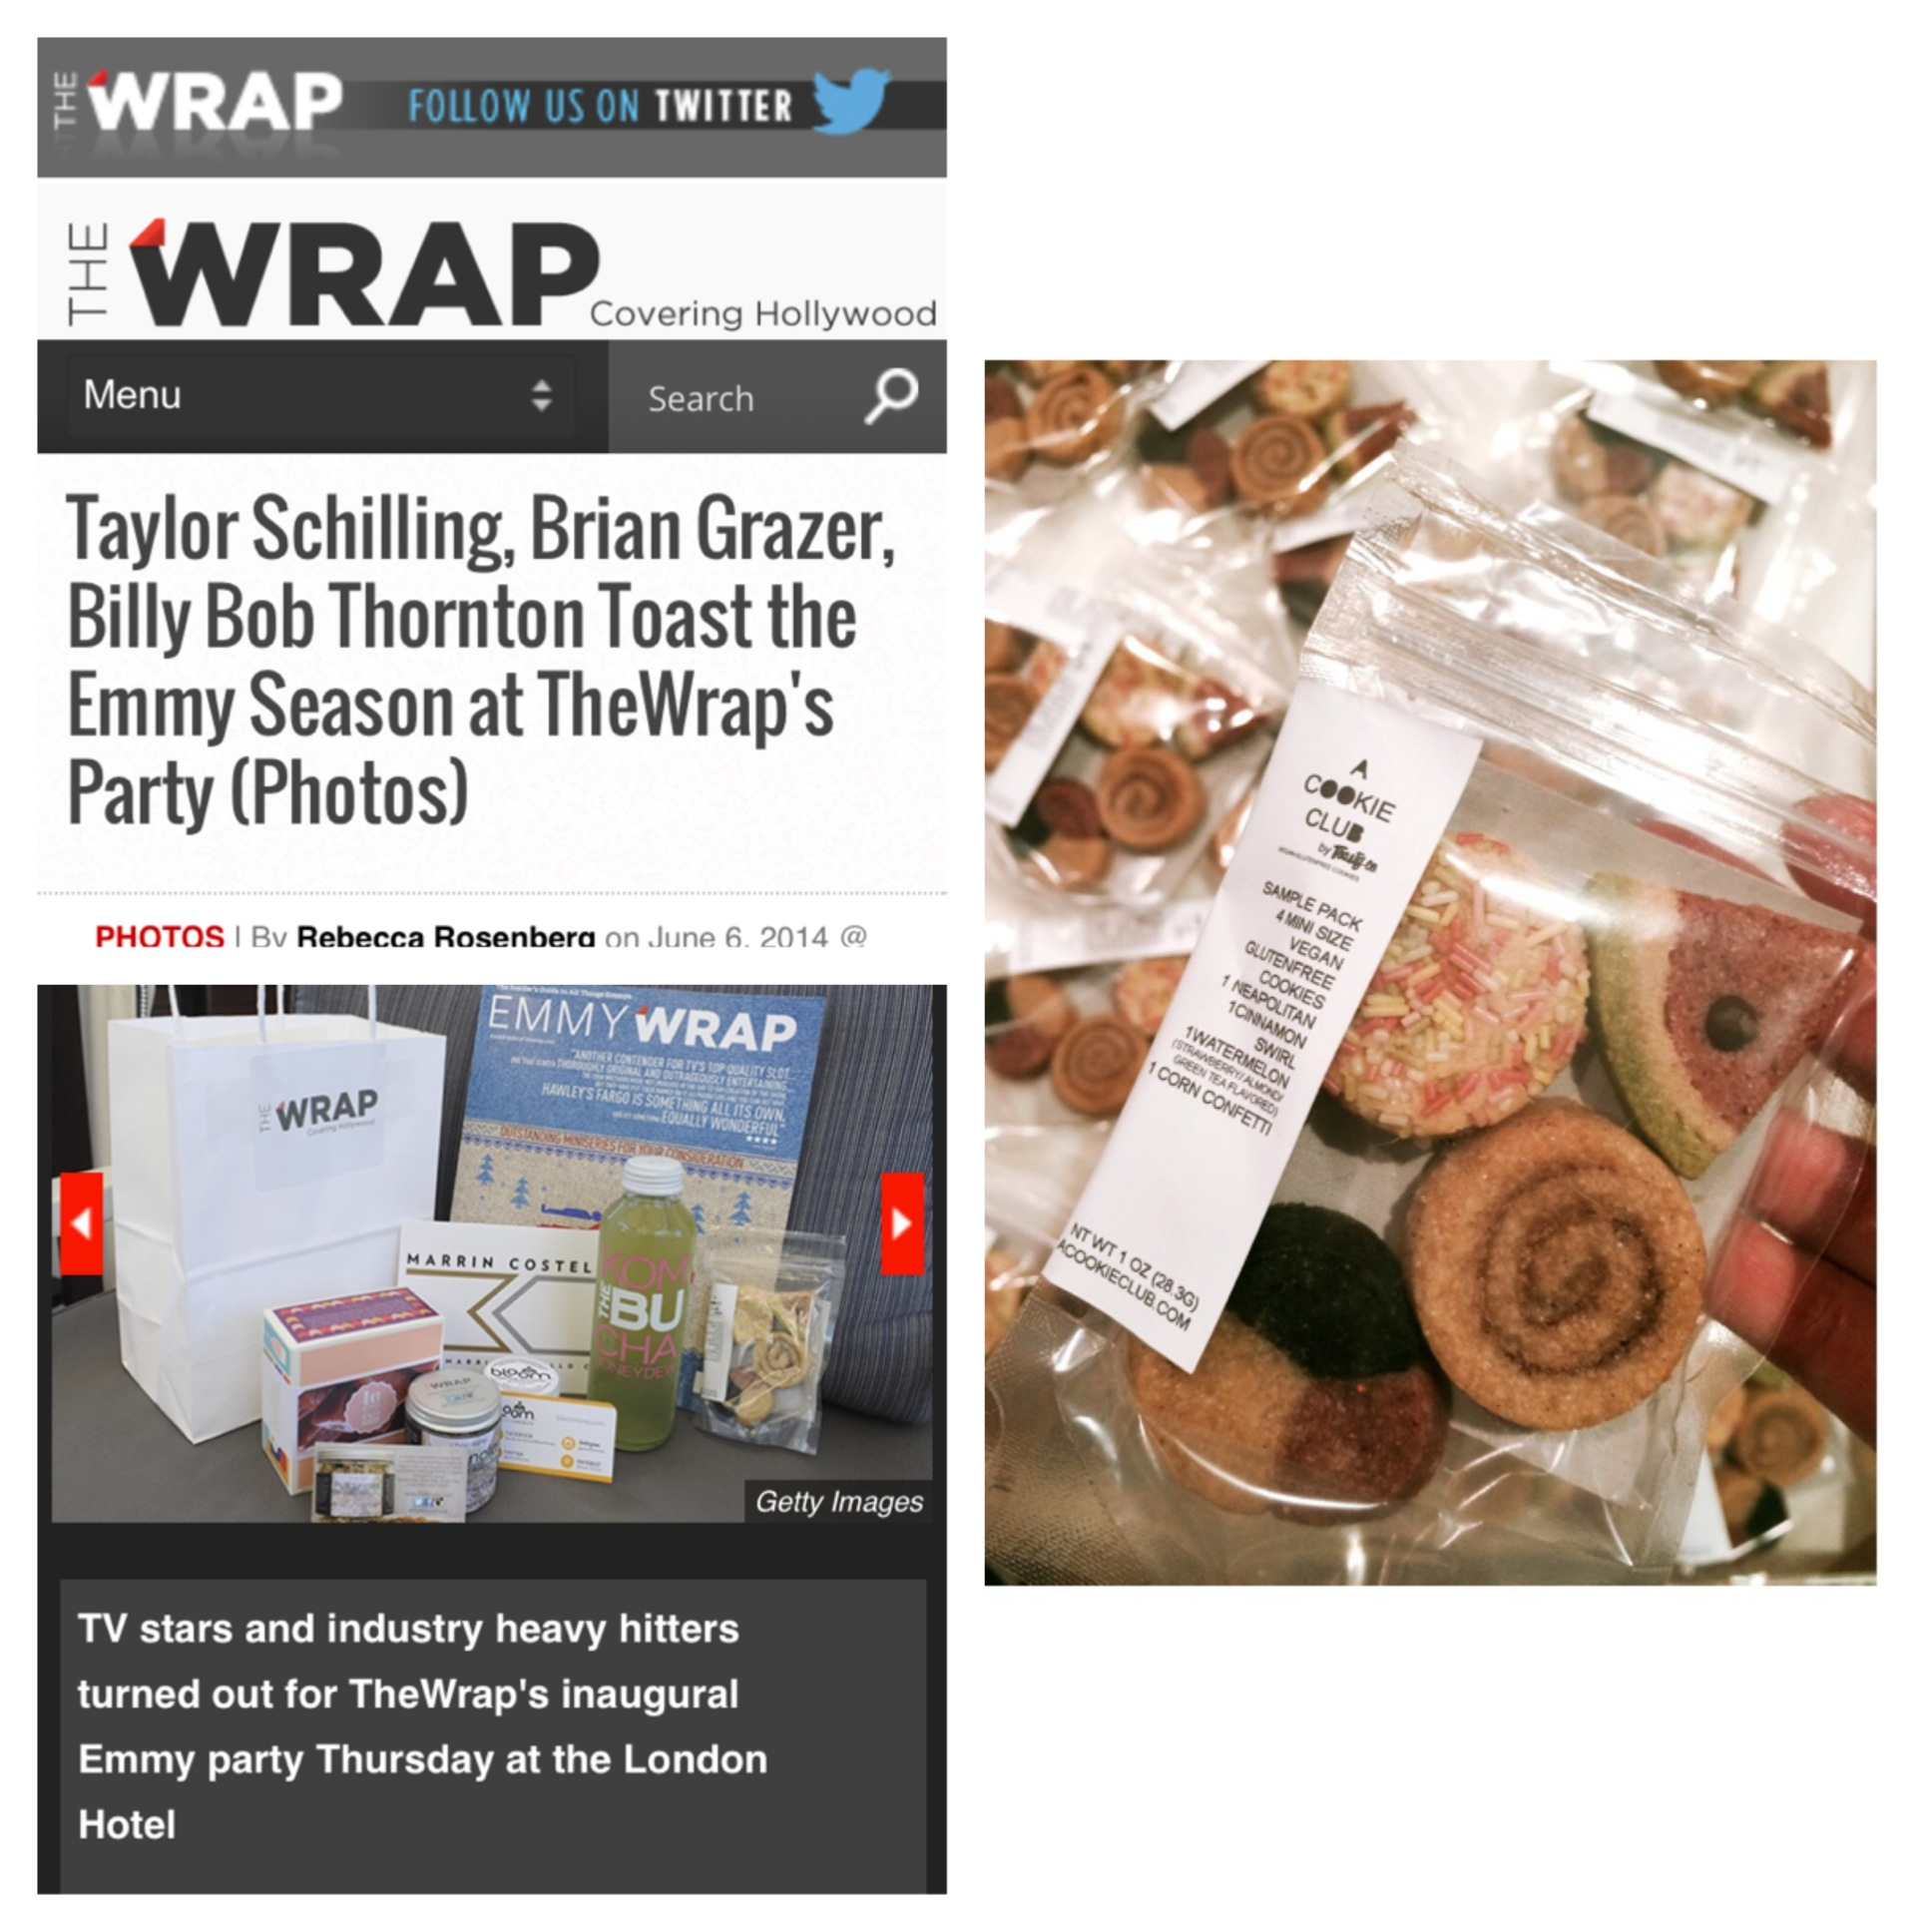 At the beginning of June, we contributed to the gift bags for TheWrap Emmy party at The London hotel. This is when we turned the mini sized versions of our regular cookies into an actual sample pack! This well rounded pack offers a taste of our regular menu favorites. For more photos from the event, please visit: www.thewrap.com/taylor-schilling-billy-bob-thorton-brian-grazer-emmy-party-photos/43/, June 2014. VEGAN / GLUTENFREE